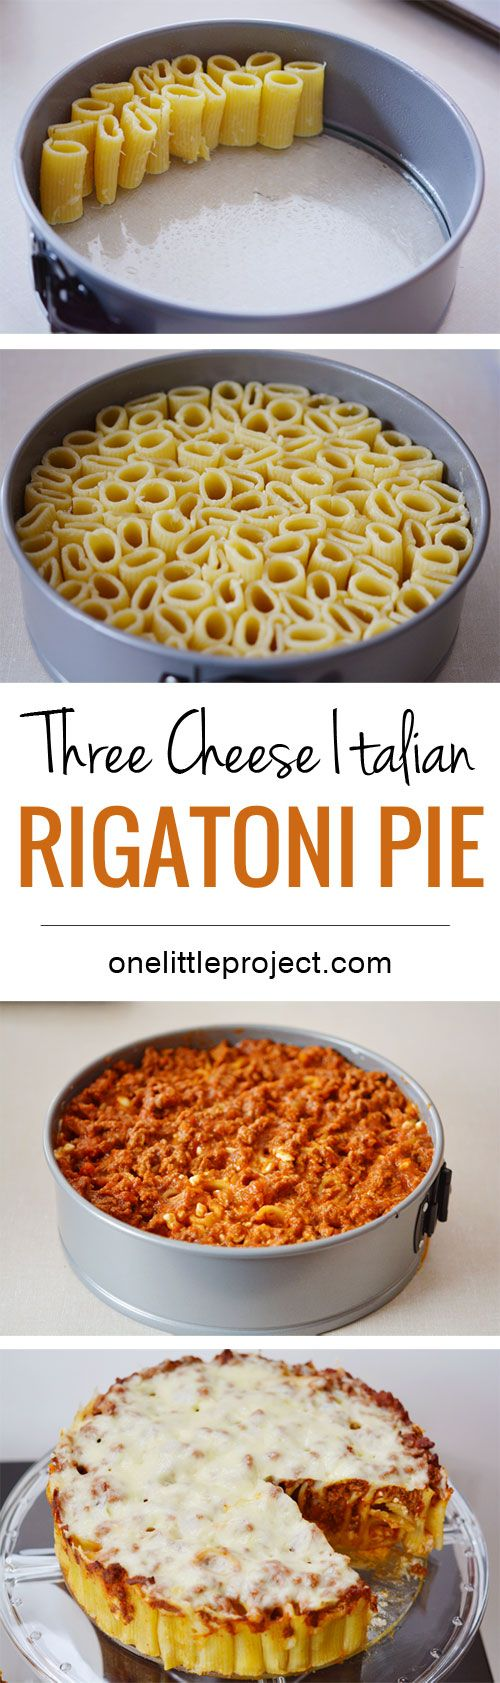 How fun is this? Stand up rigatoni noodles in a spring form pan and suddenly you have rigatoni pie, a fun and totally different way to serve pasta when you are in a slump! #saucesome